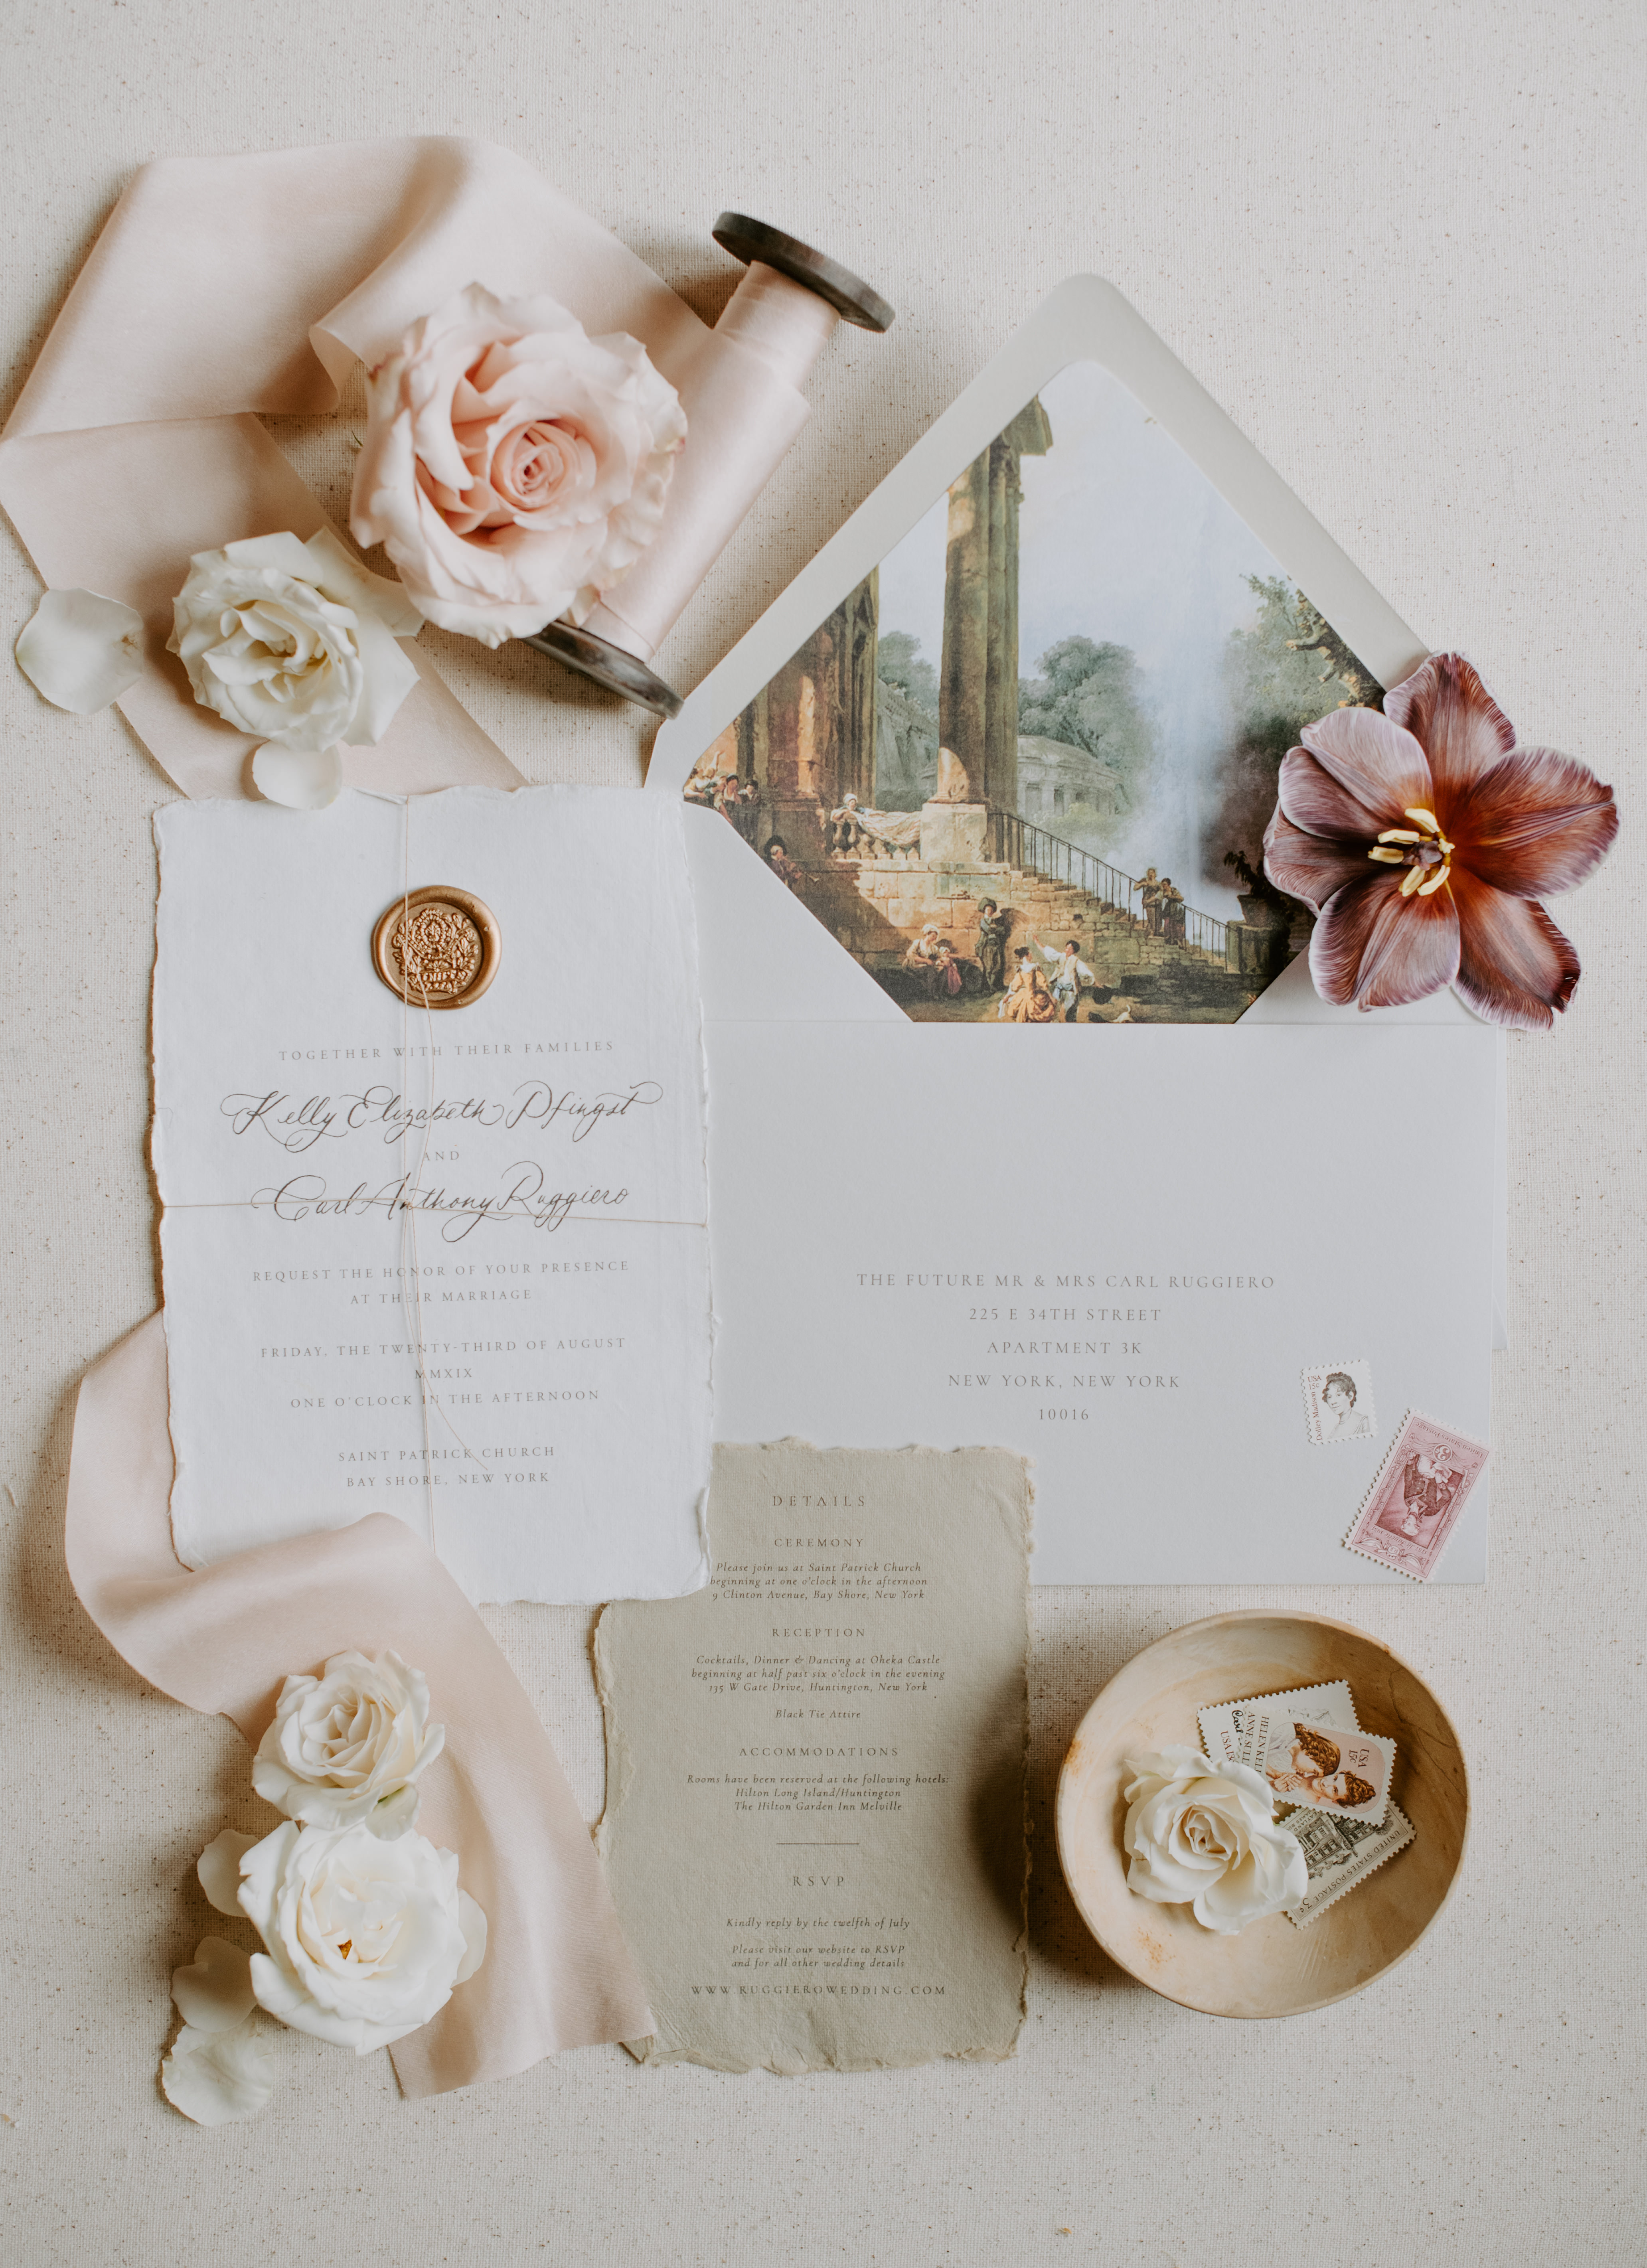 Elegant wedding invitation flatlay with ruffled edges and painted envelope - photo by Kristen Marie Parker